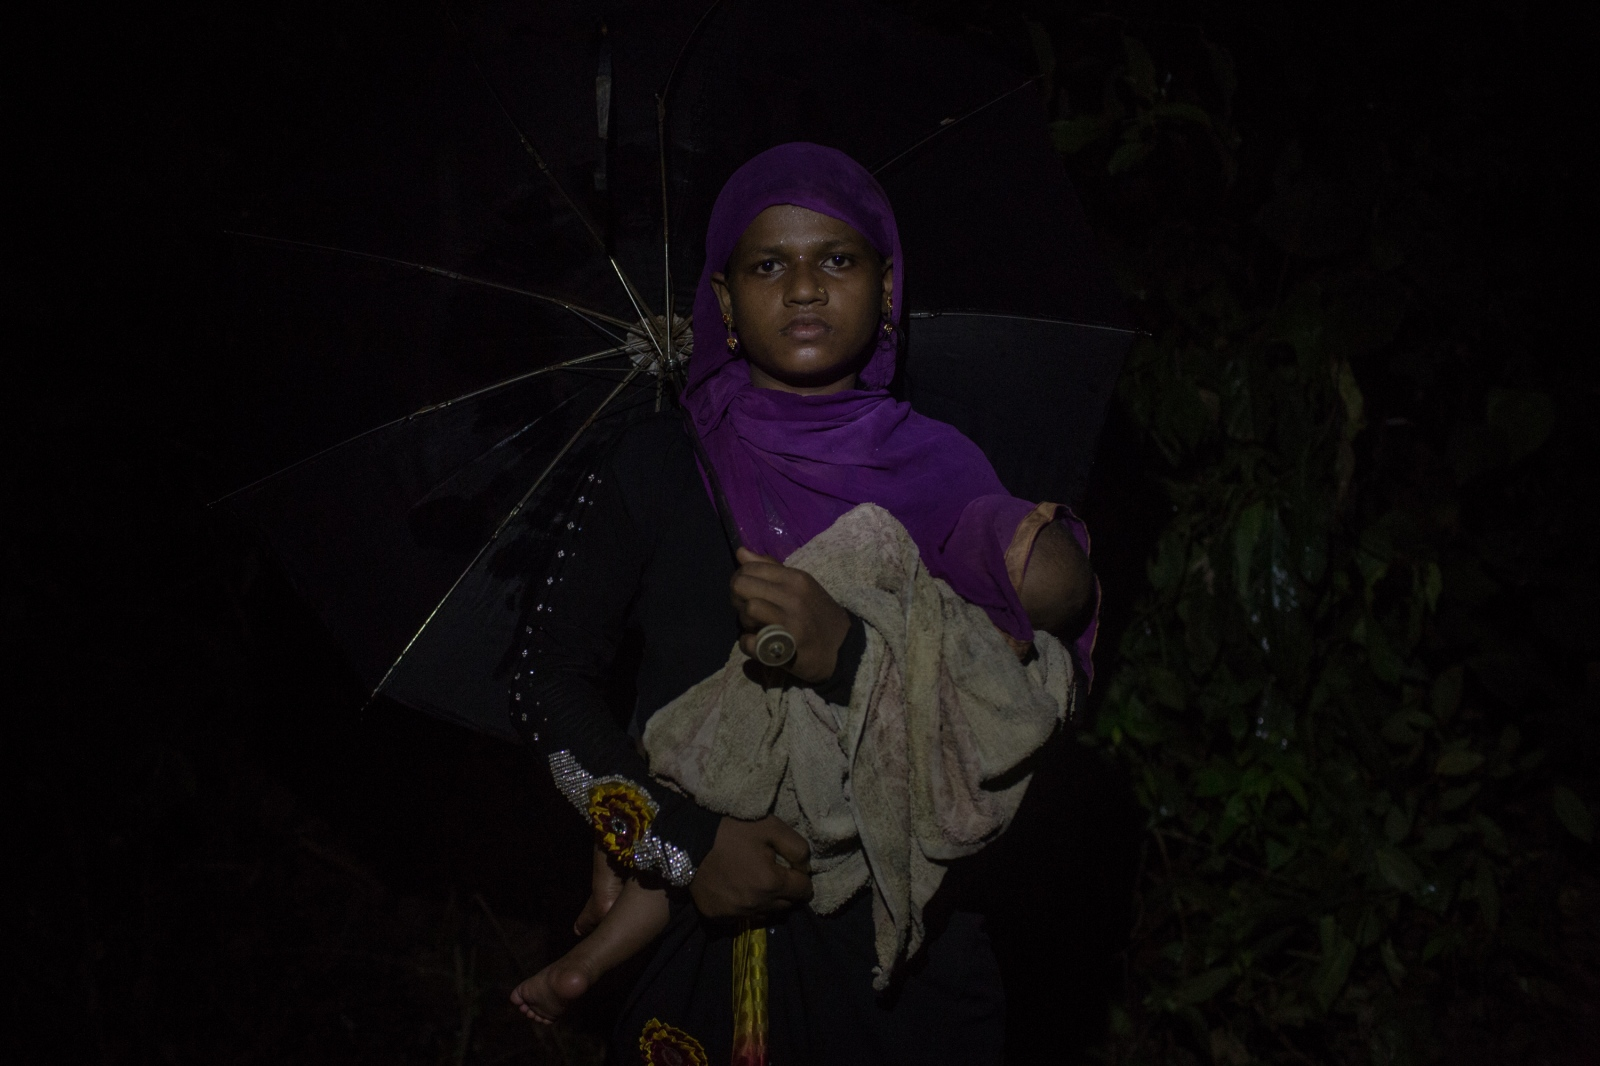 Samira, 20, waits with her baby by the side of the road for food and cash distributions near the Balukhali refugee camp in Bangladesh on Saturday September 23, 2017. Samira was separated from her husband after being attacked by the Burmese Army in the Buthidaung Township. She does not know what happened to him.